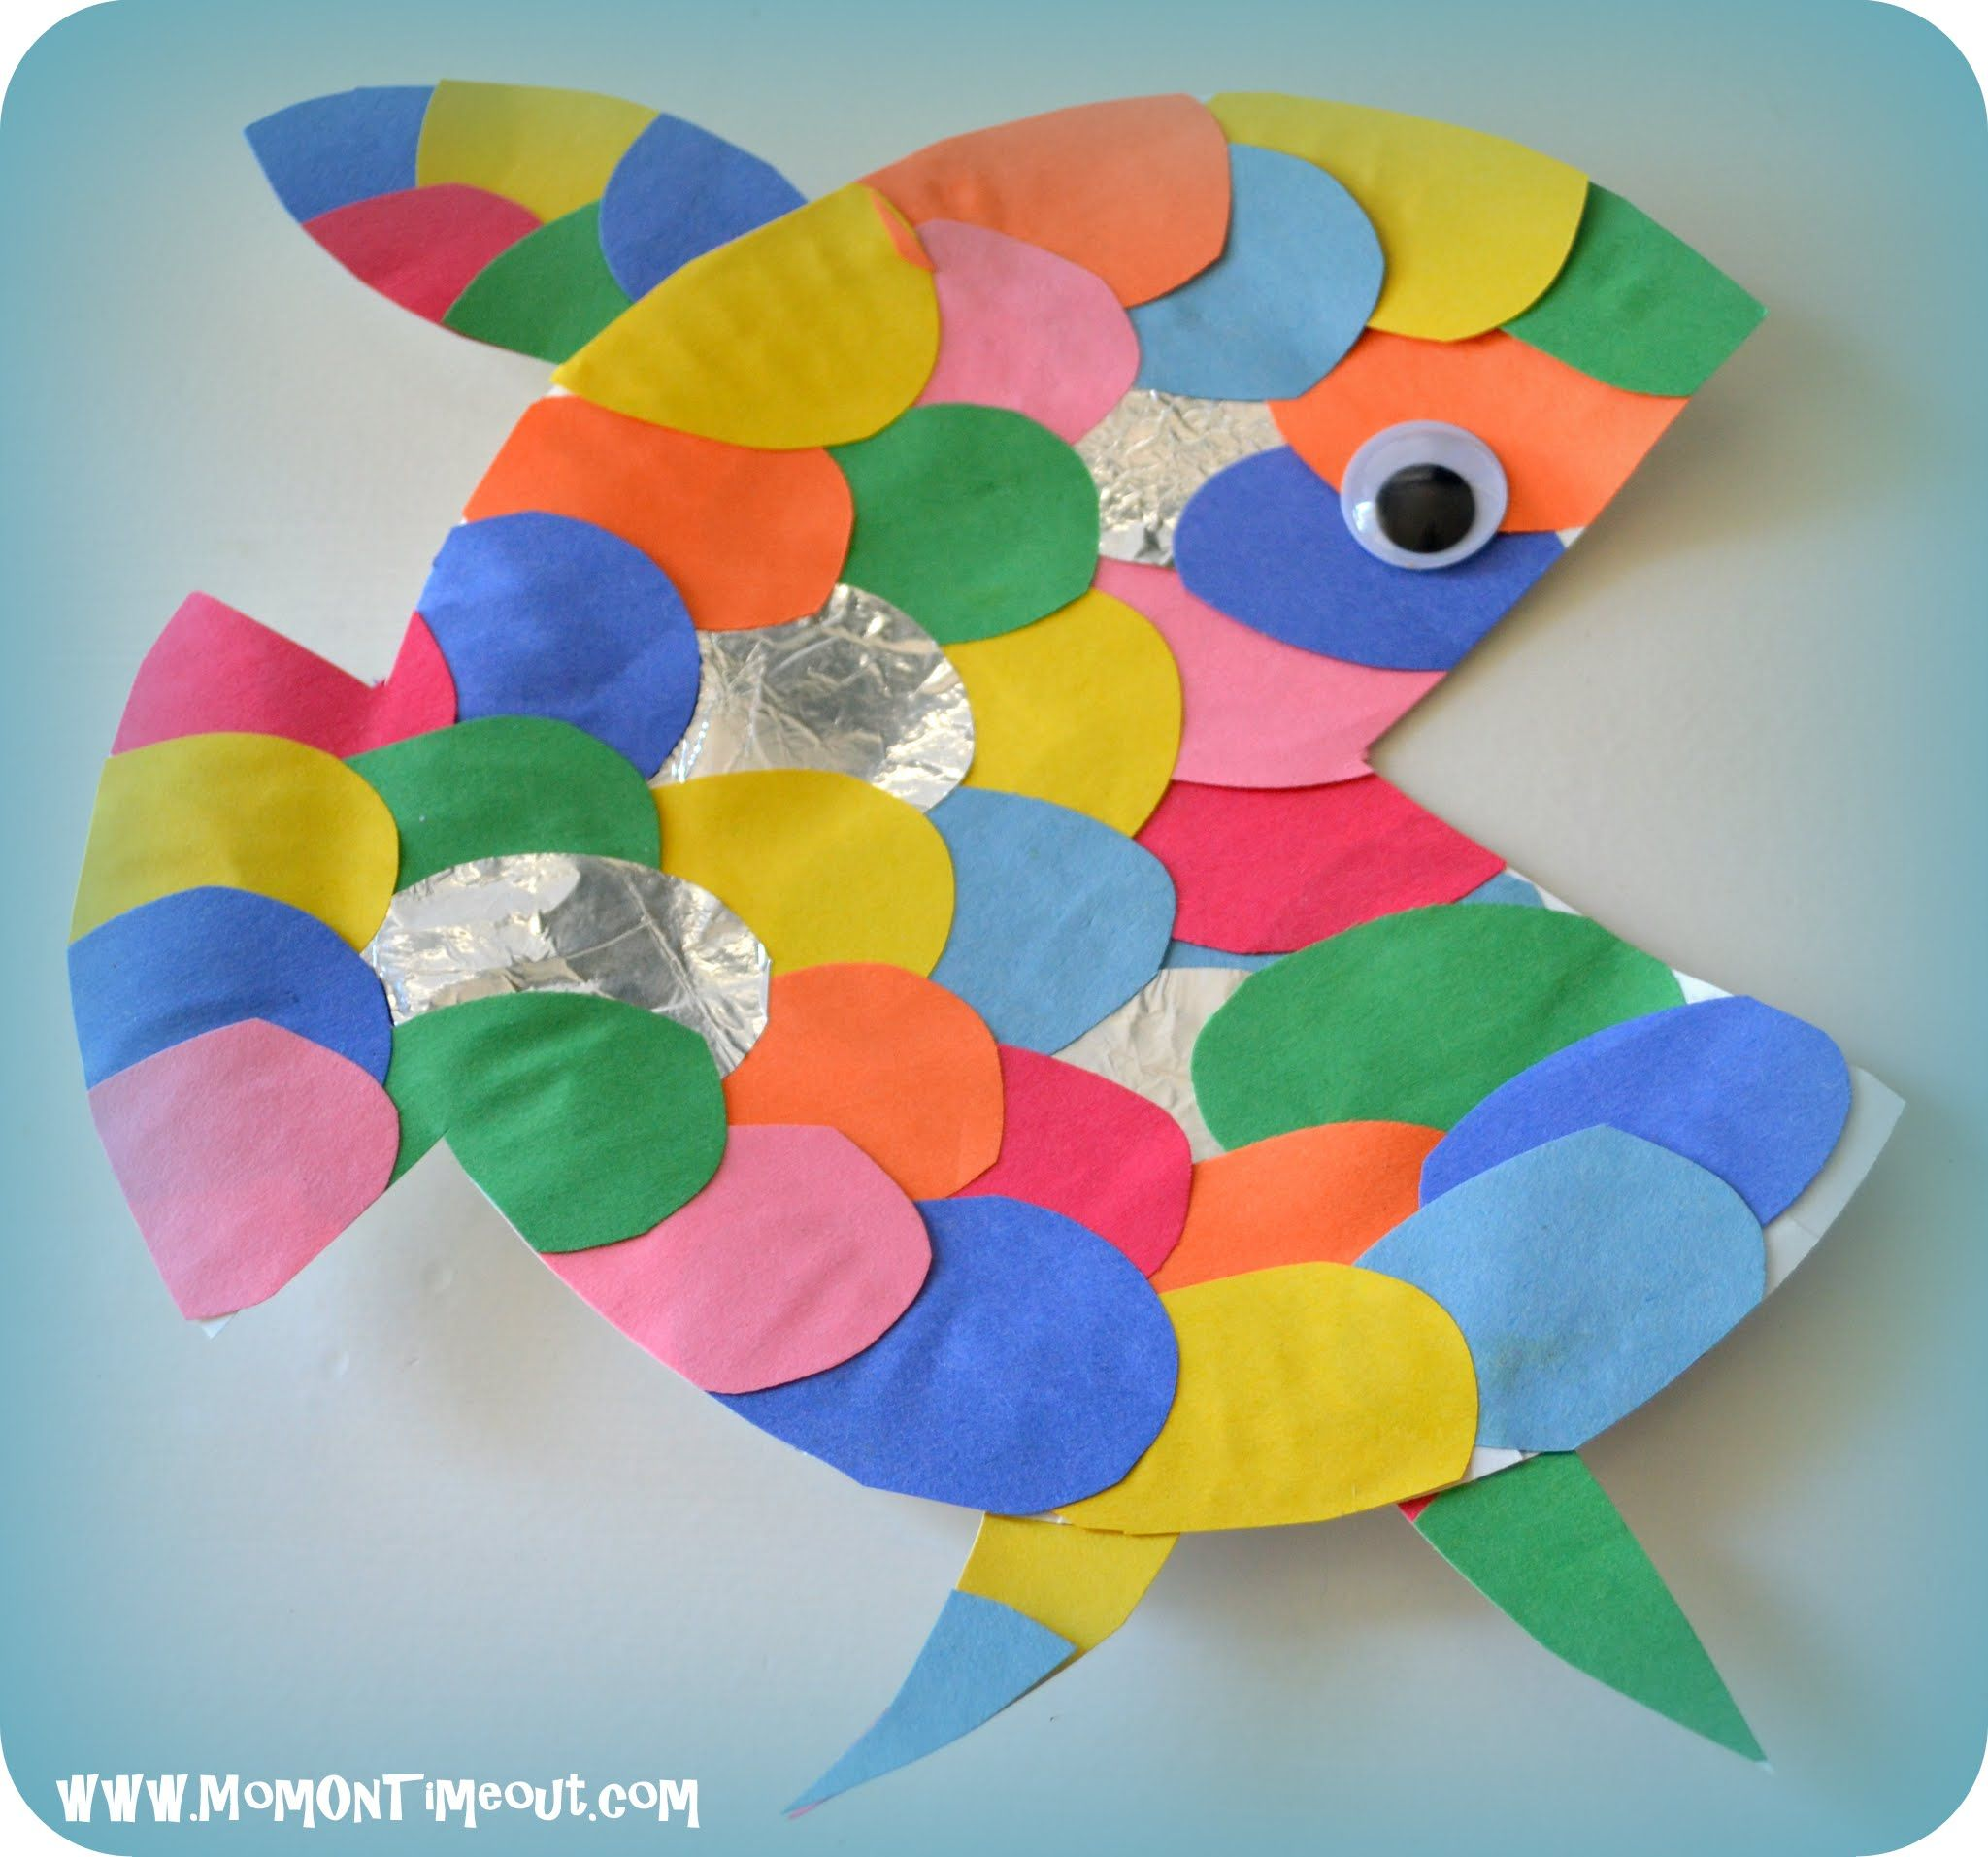 Construction paper crafts 4 school activities for Where to buy contact paper for crafts